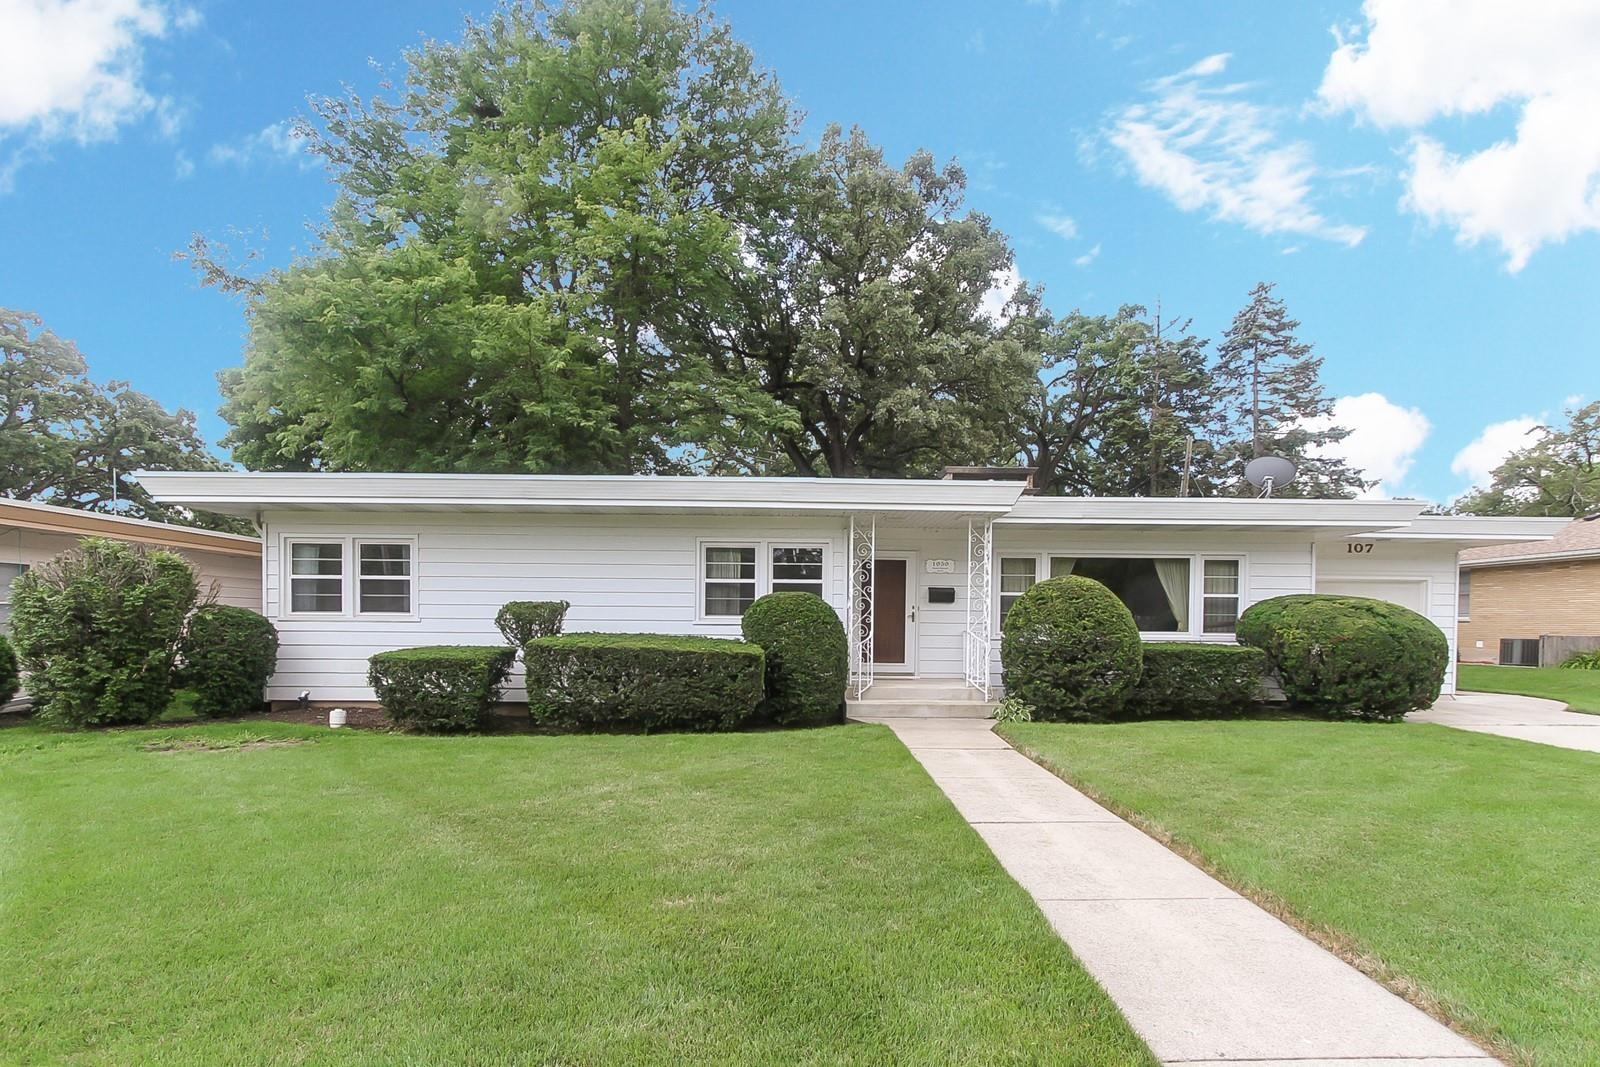 107 W North Avenue, Bartlett, IL 60103 - #: 10791636